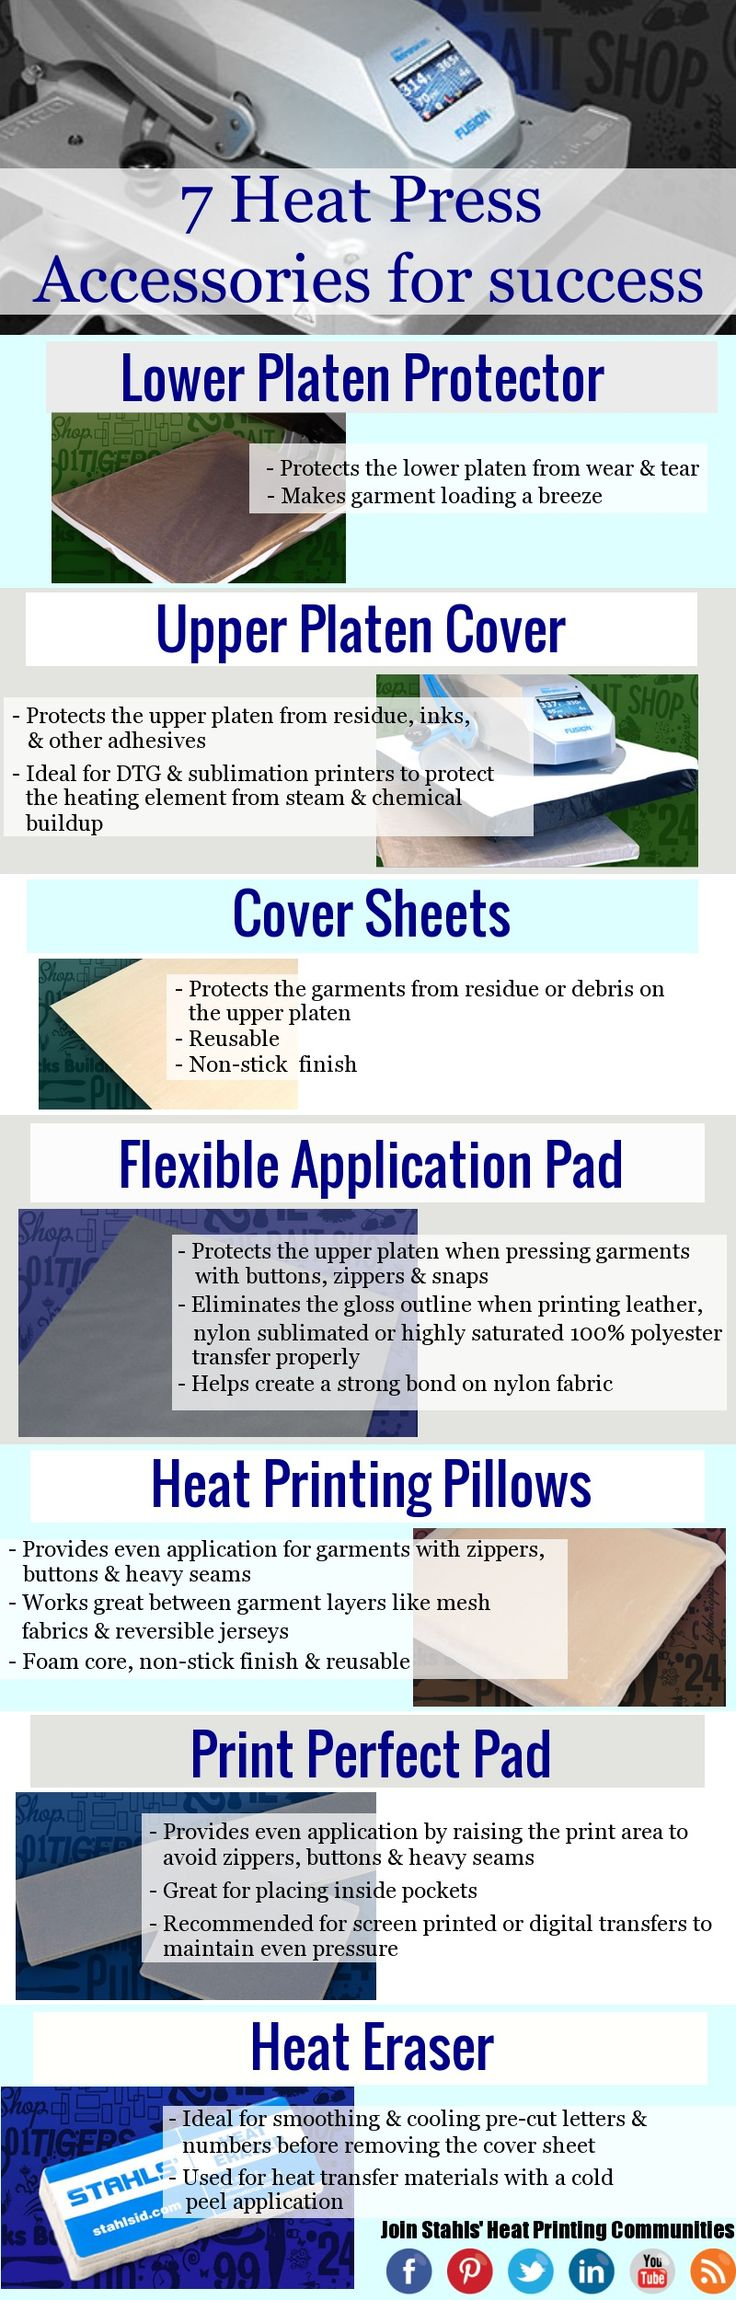 7 heatpress accessories for heat printing success stahlscom